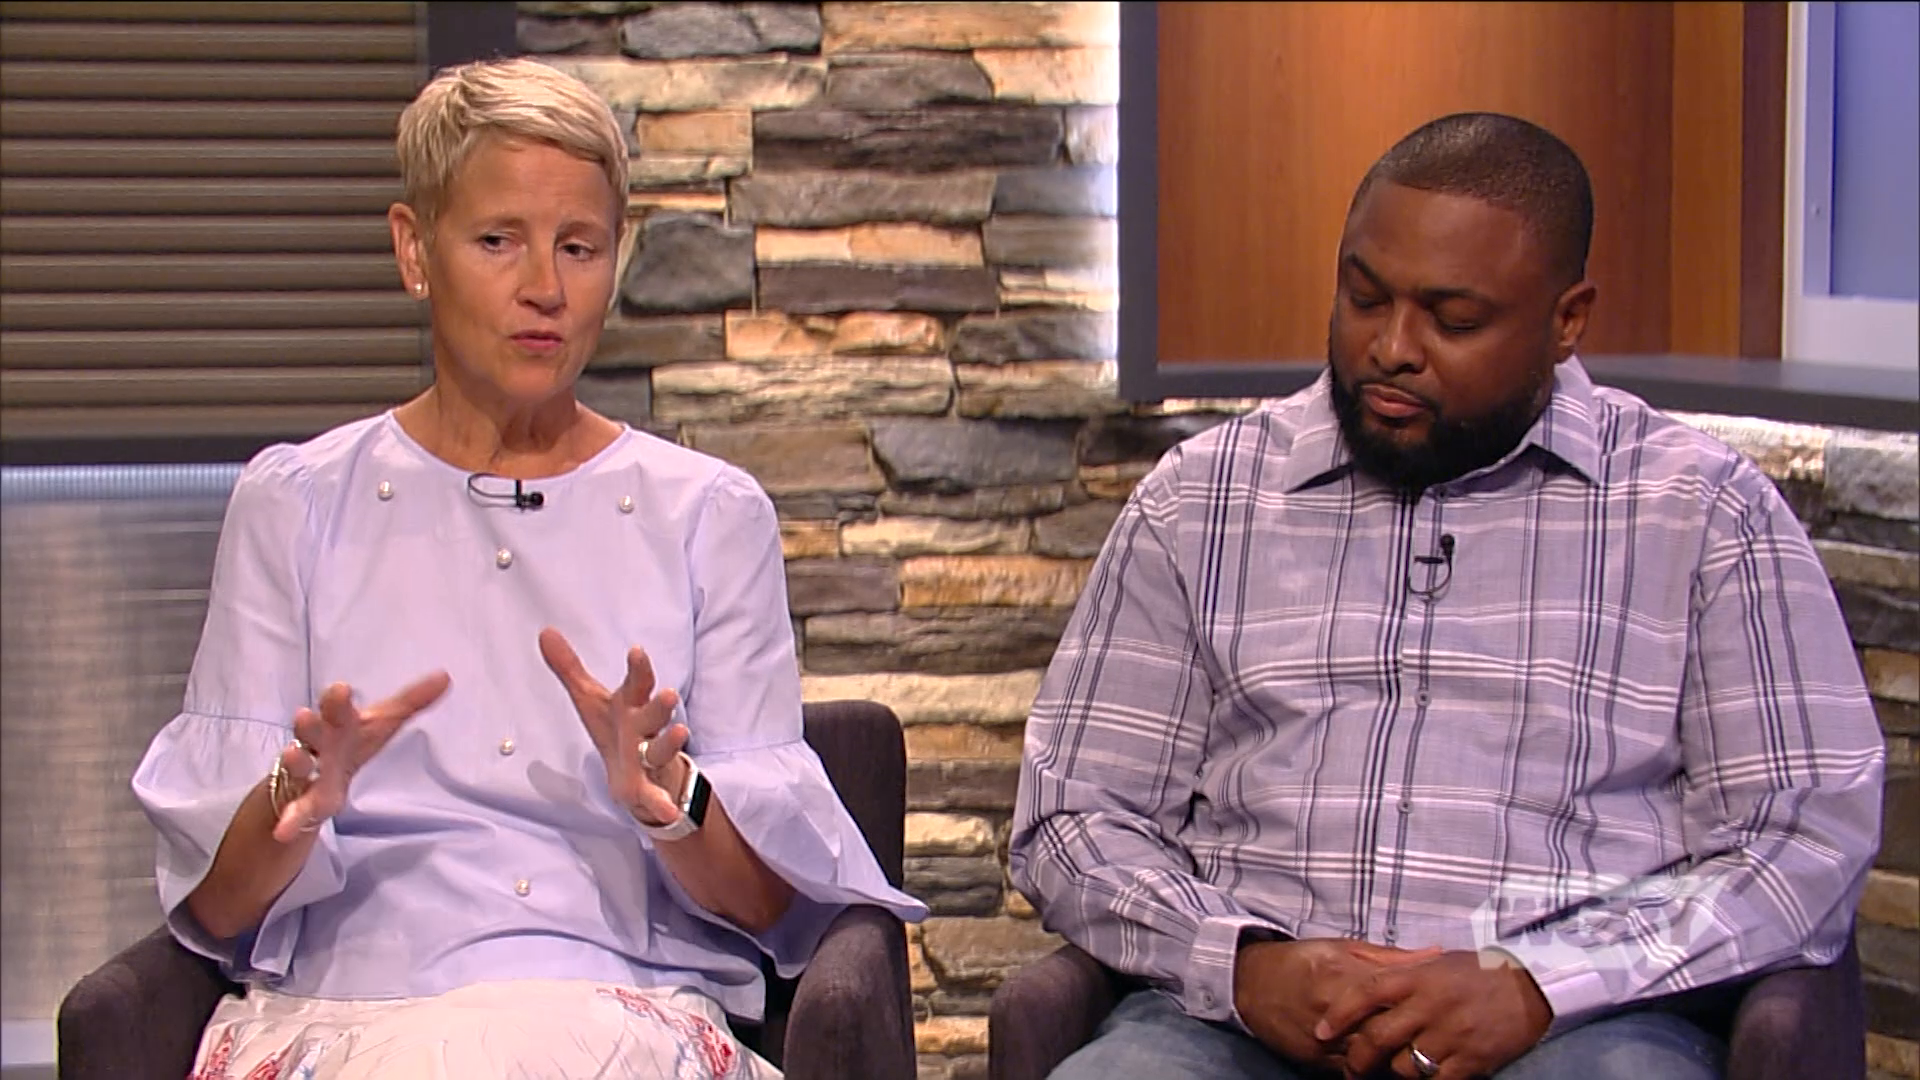 Mental Health Association Recovery Coach Dallas Clark discusses the GRIT residential treatment program and shares his experience battling addiction.